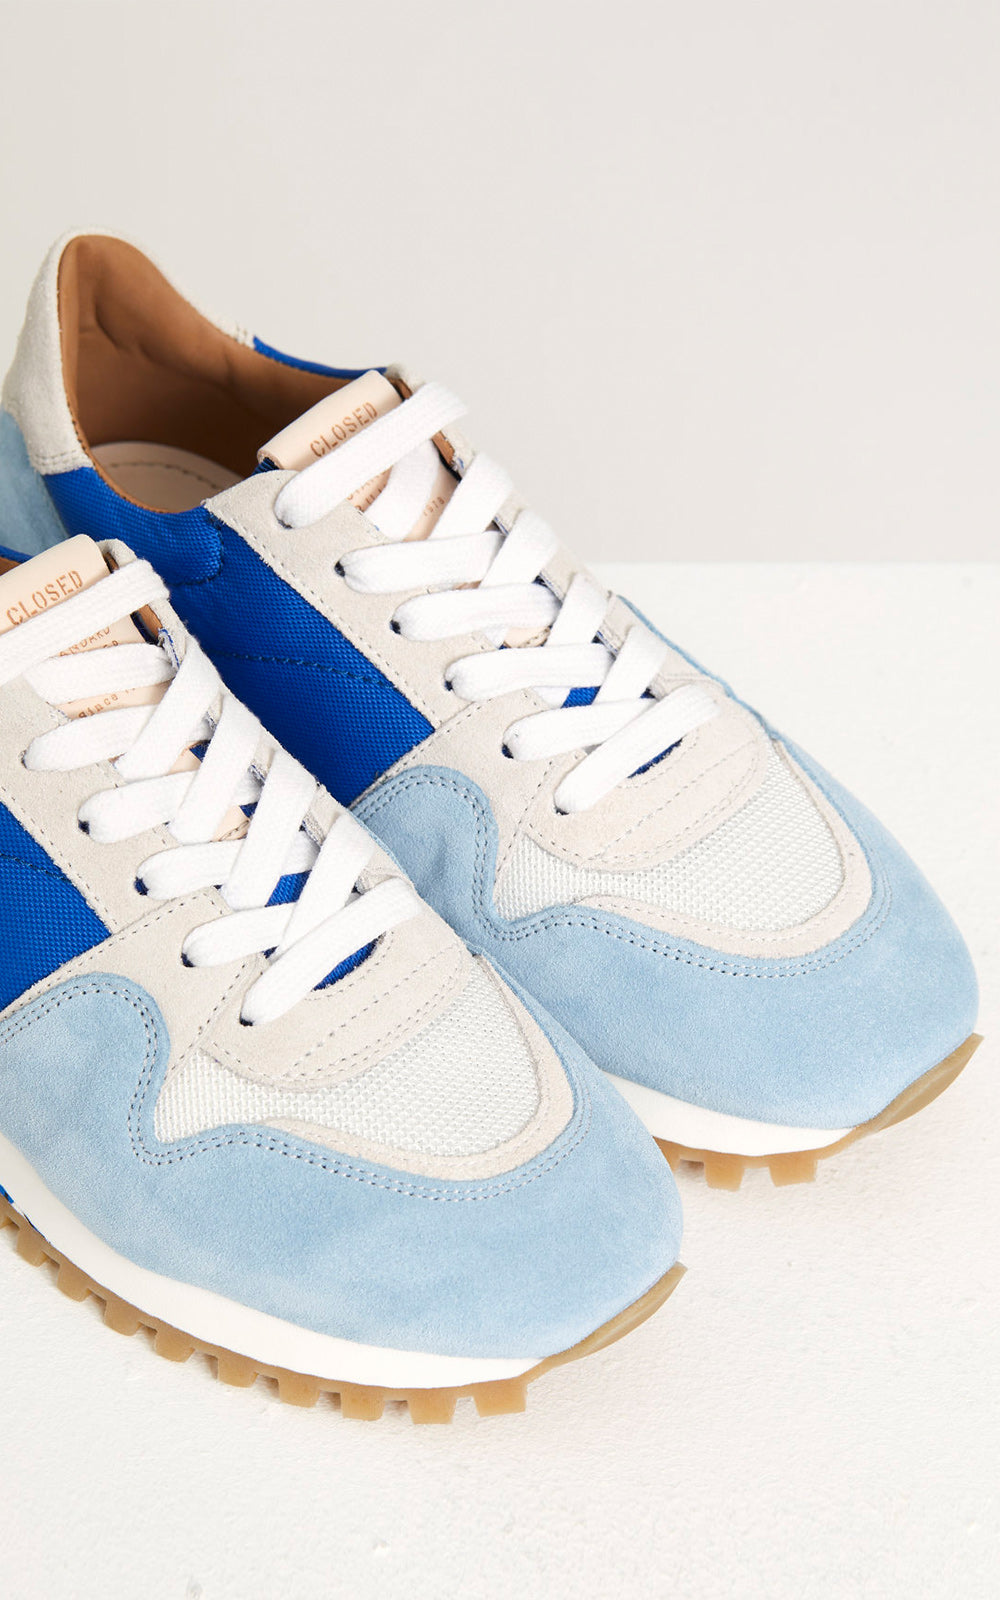 CLOSED Tech Blue, Light Blue, & Camo Runner Sneakers